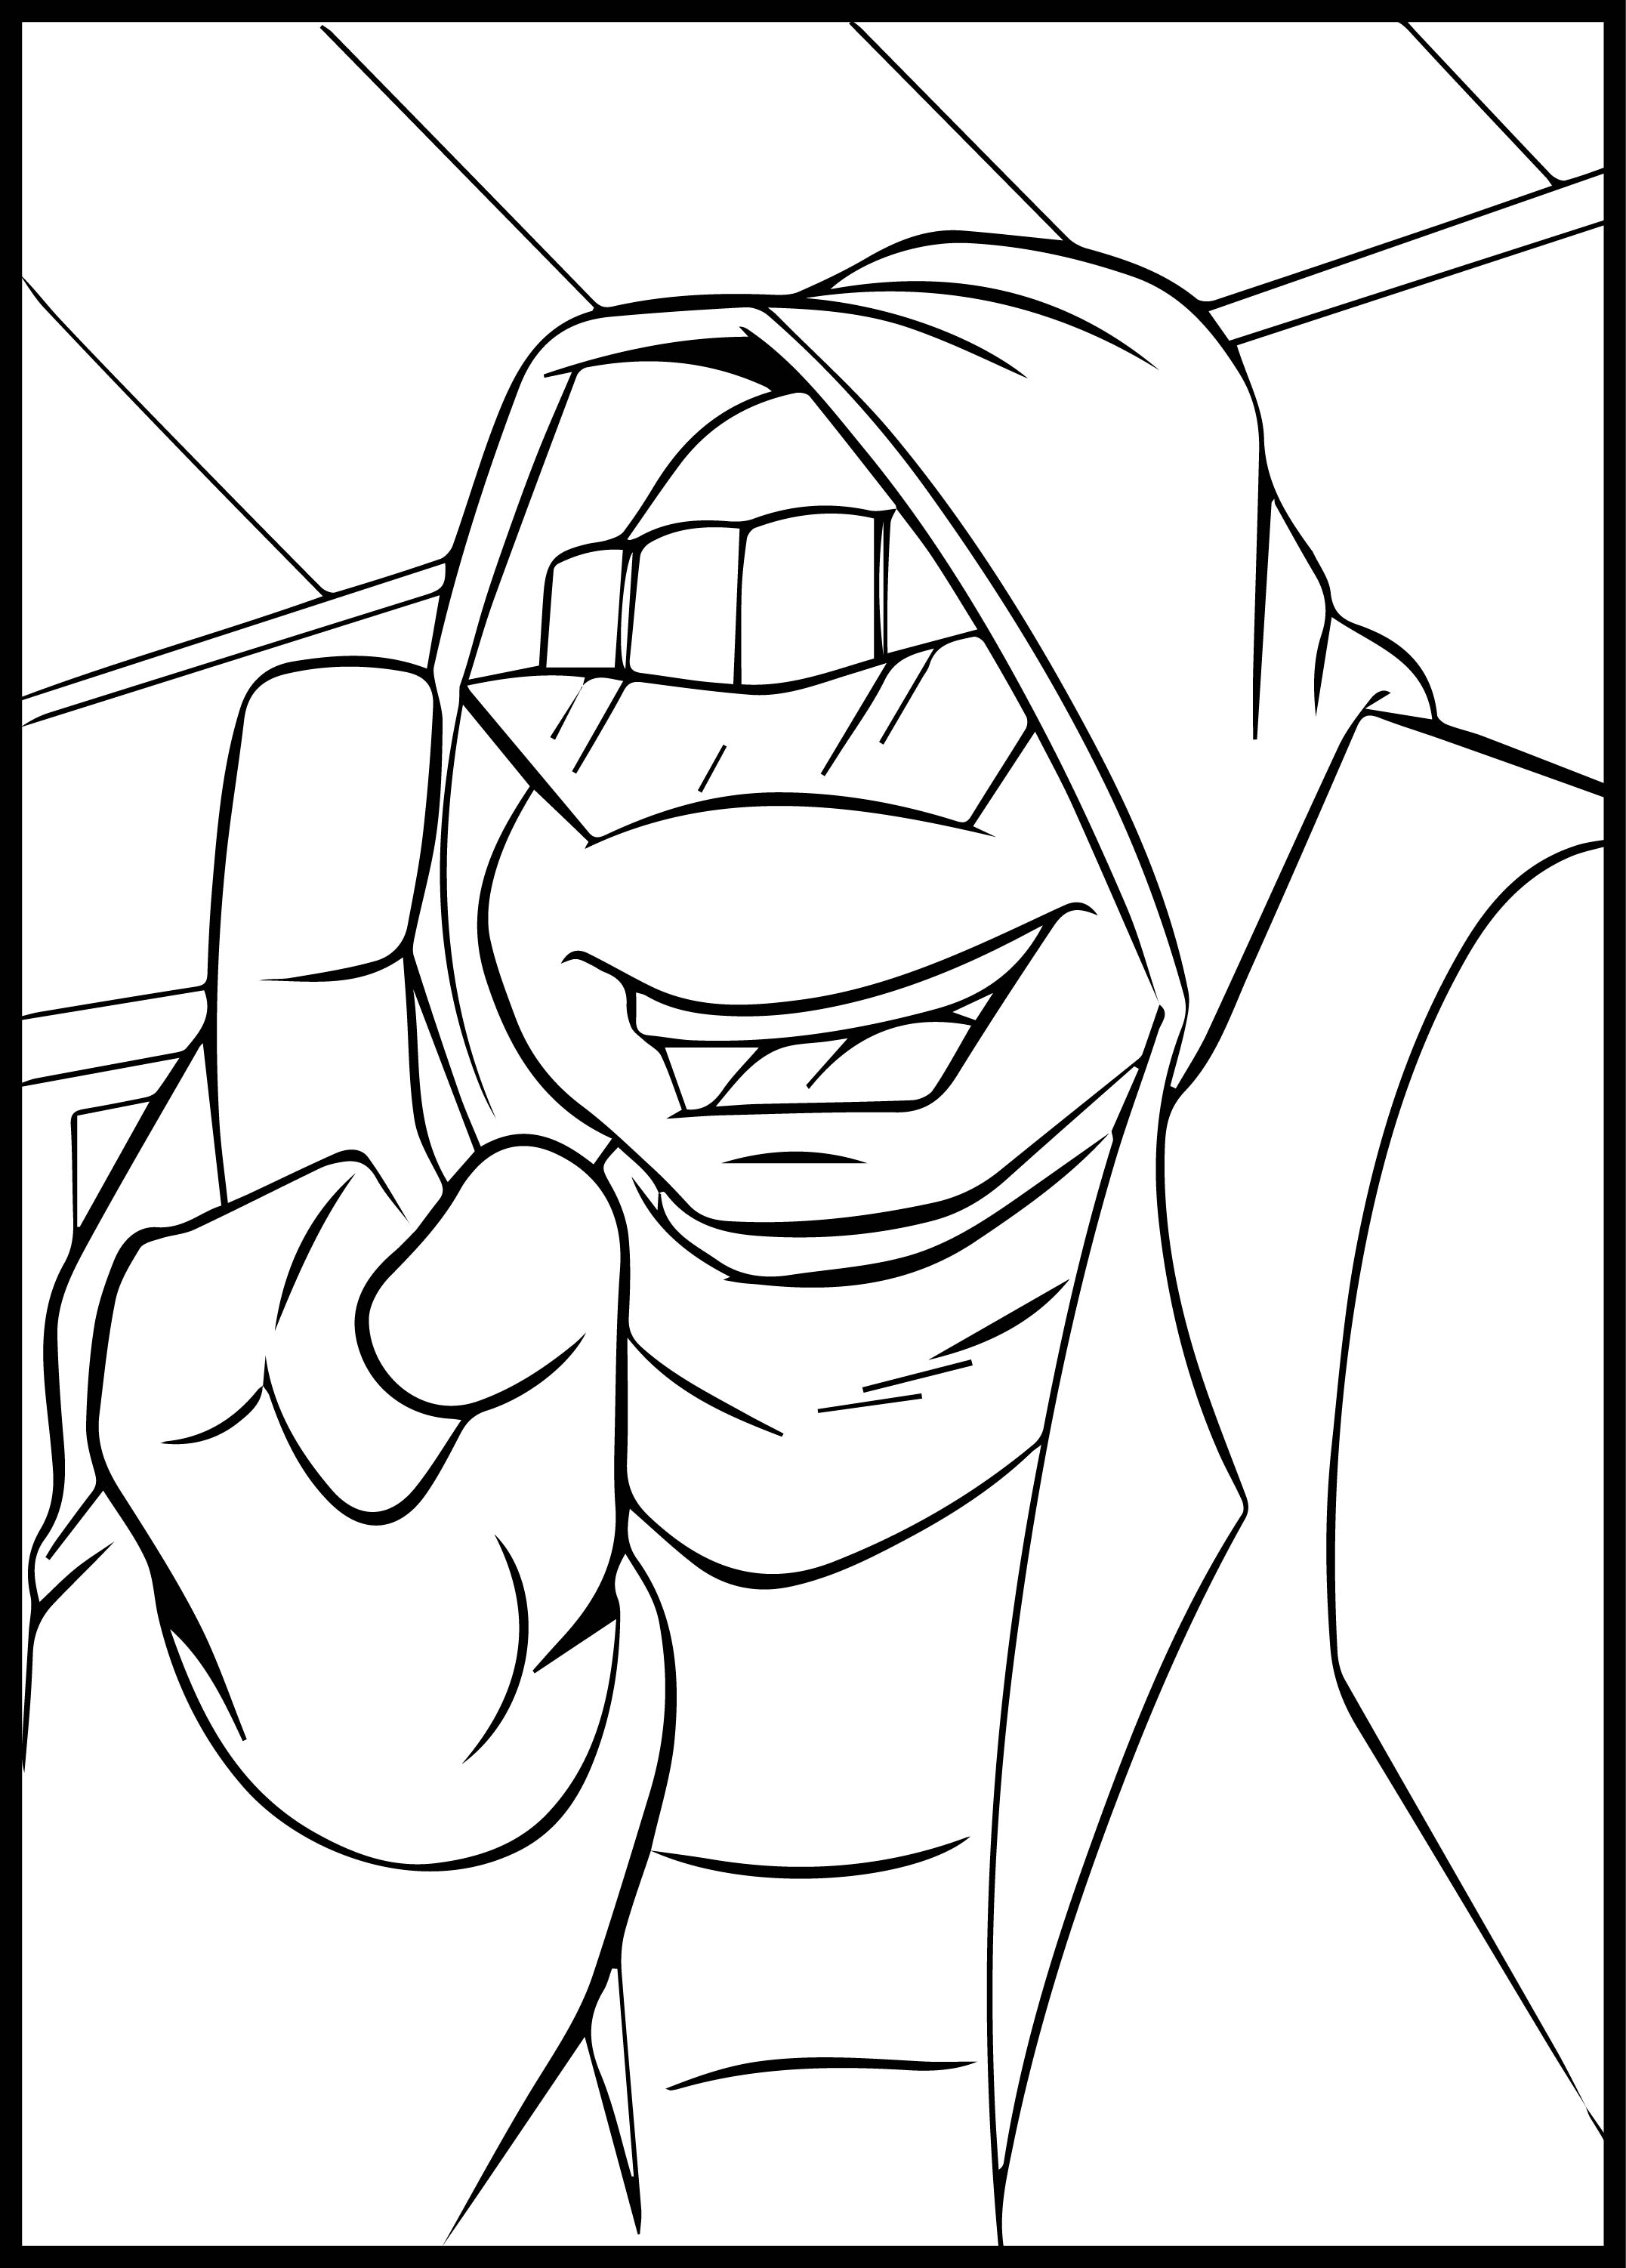 Ninja Coloring Pages Turtle 01